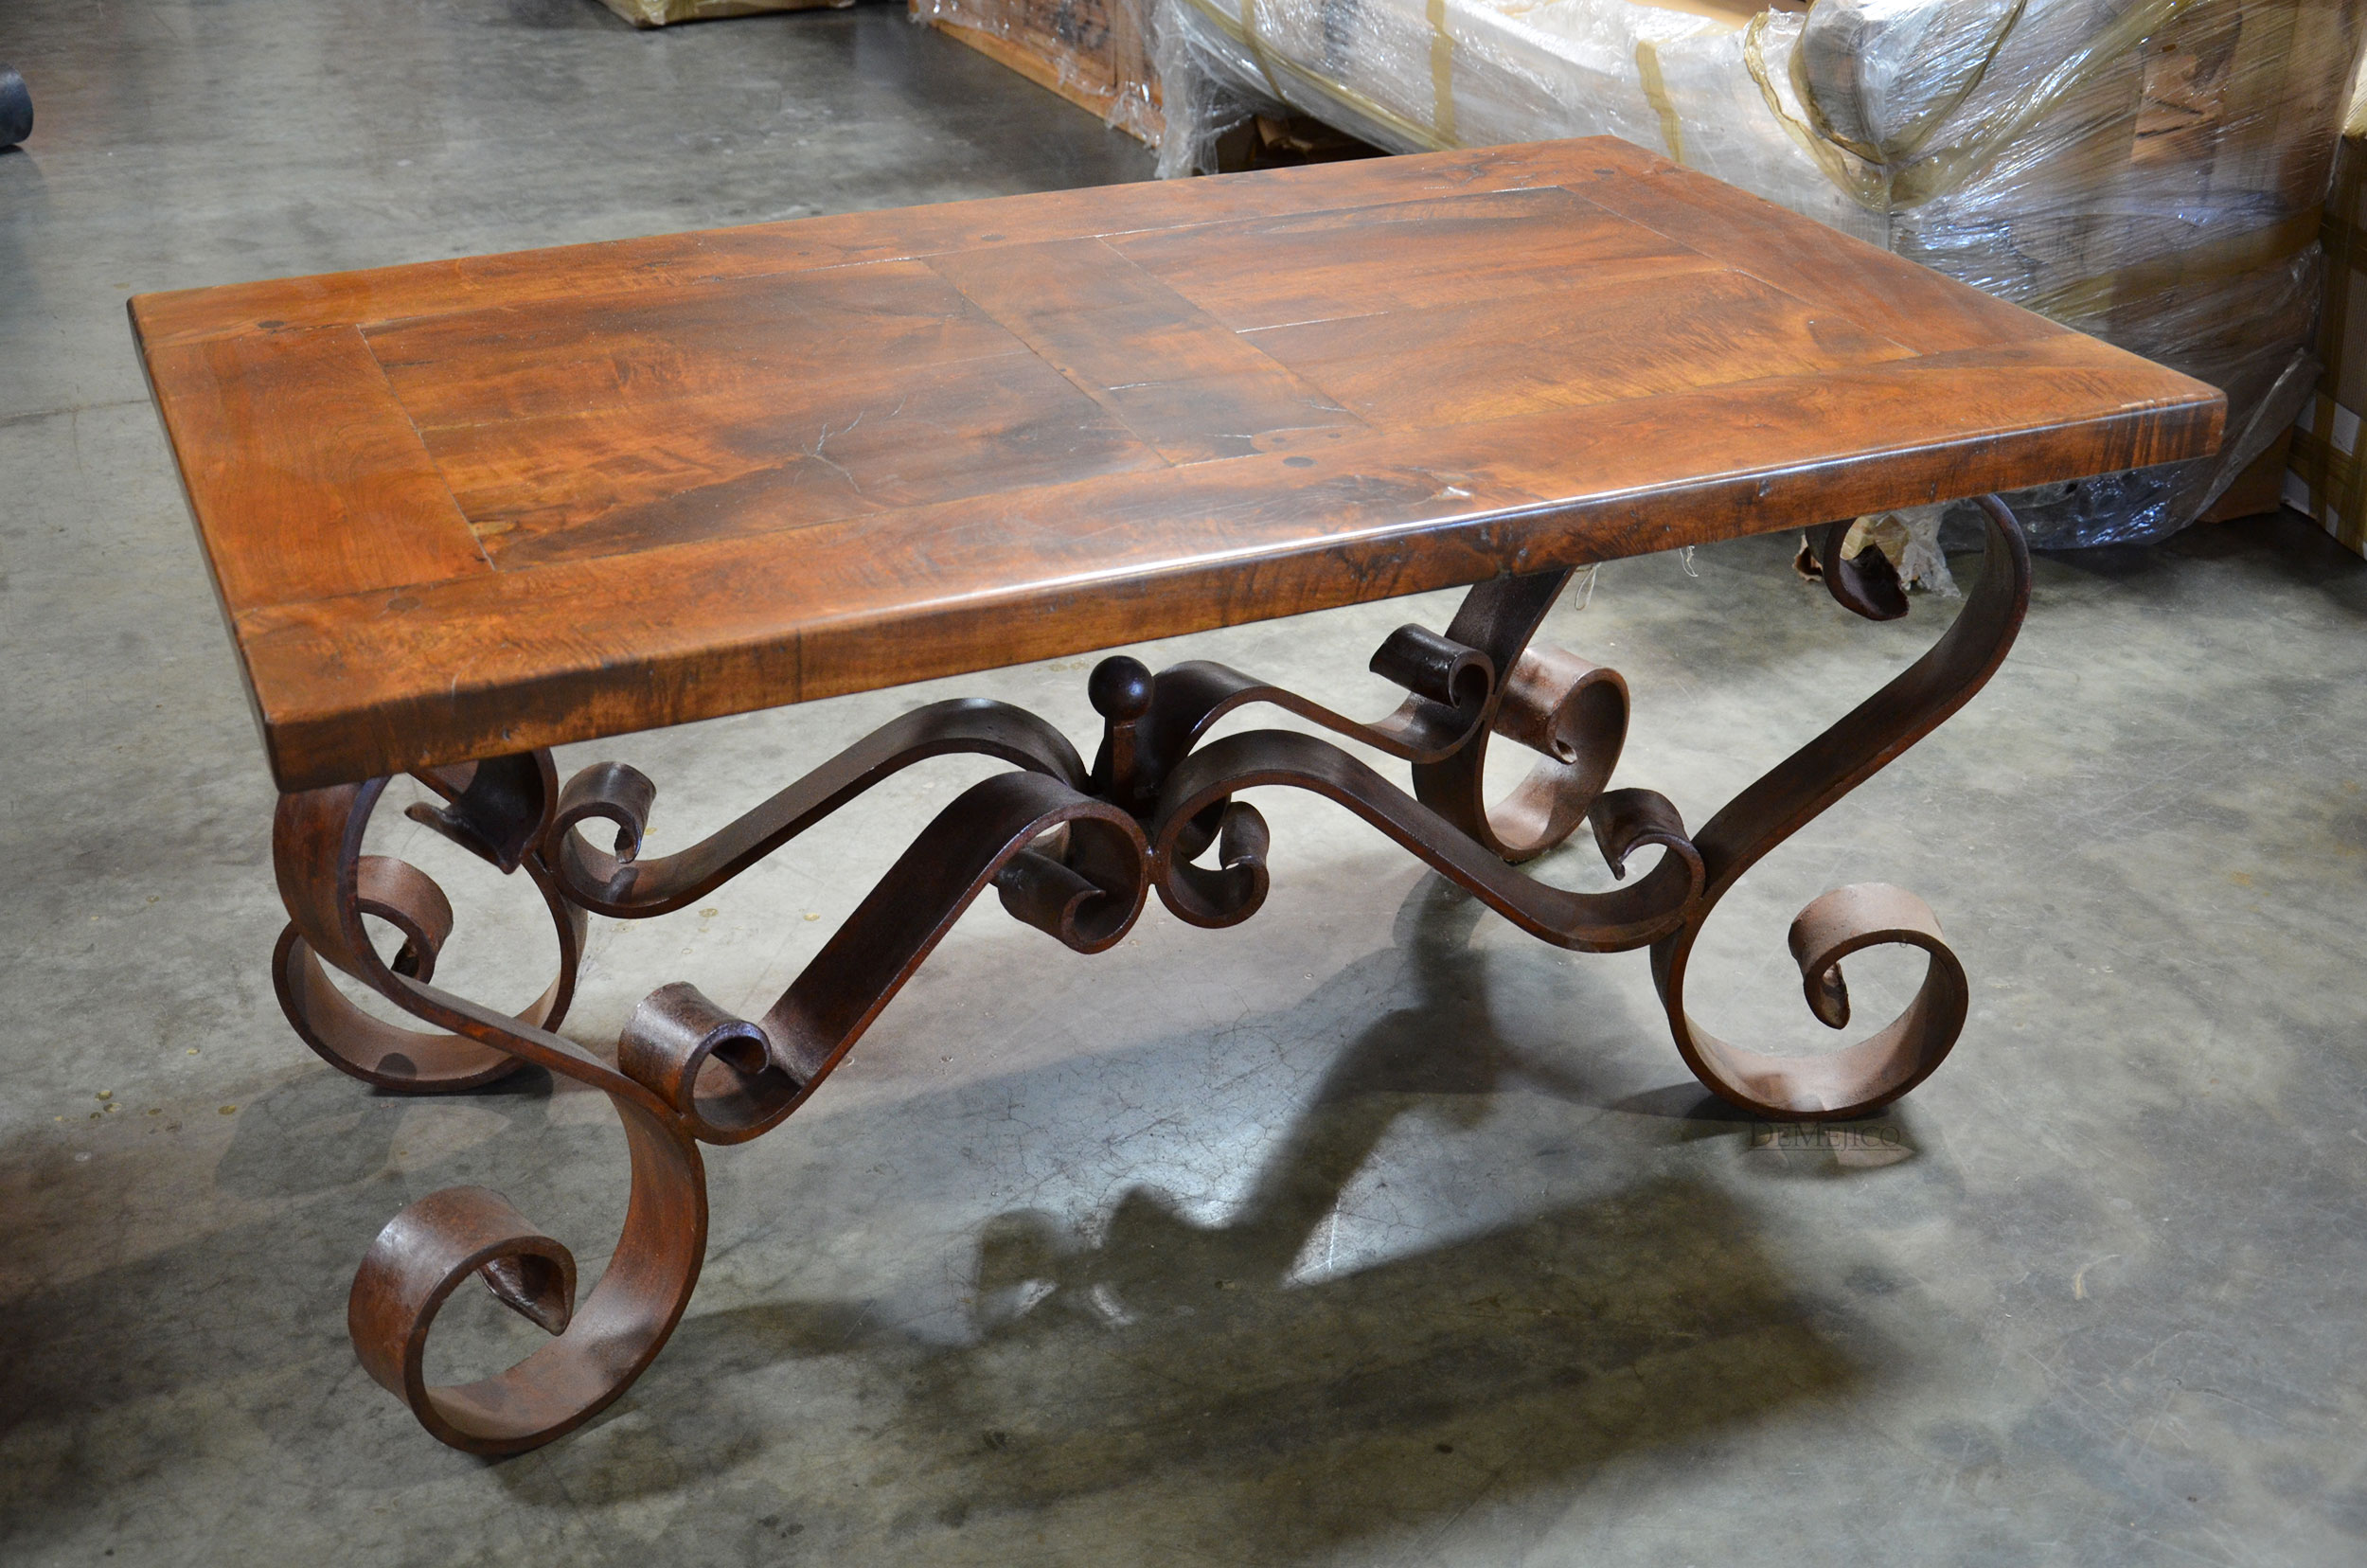 Glass-Wrought-Iron-Coffee-Table-Wonderful-Brown-Walnut-Veneer-Lift-Top-Handmade-Contemporary-Furniture (Image 8 of 10)